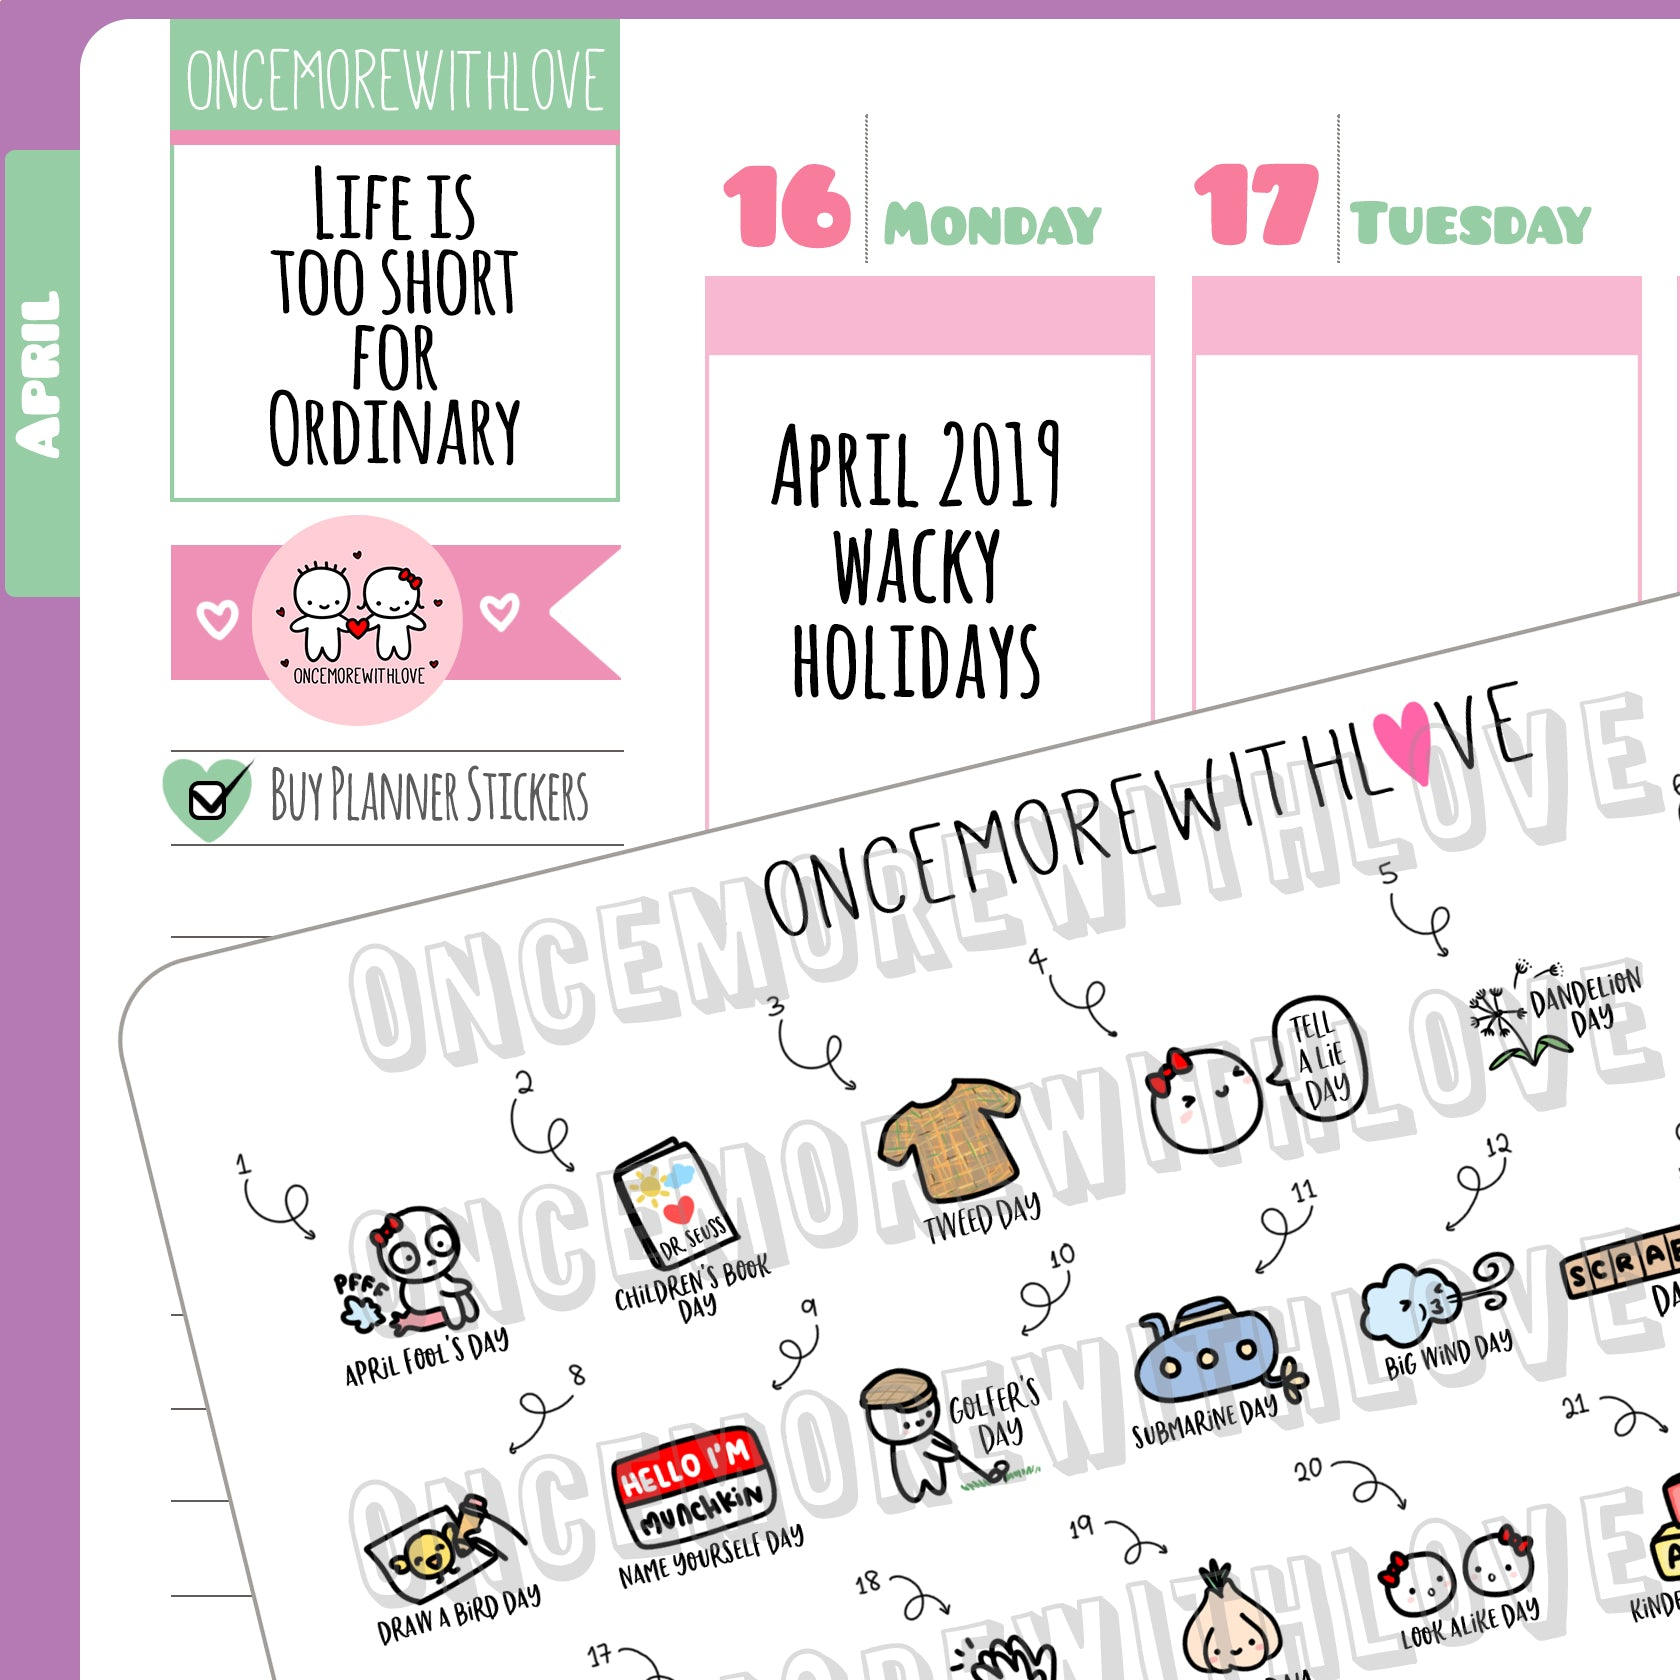 W04 - April 2019 Wacky Holidays Planner Stickers (2019 - W04)